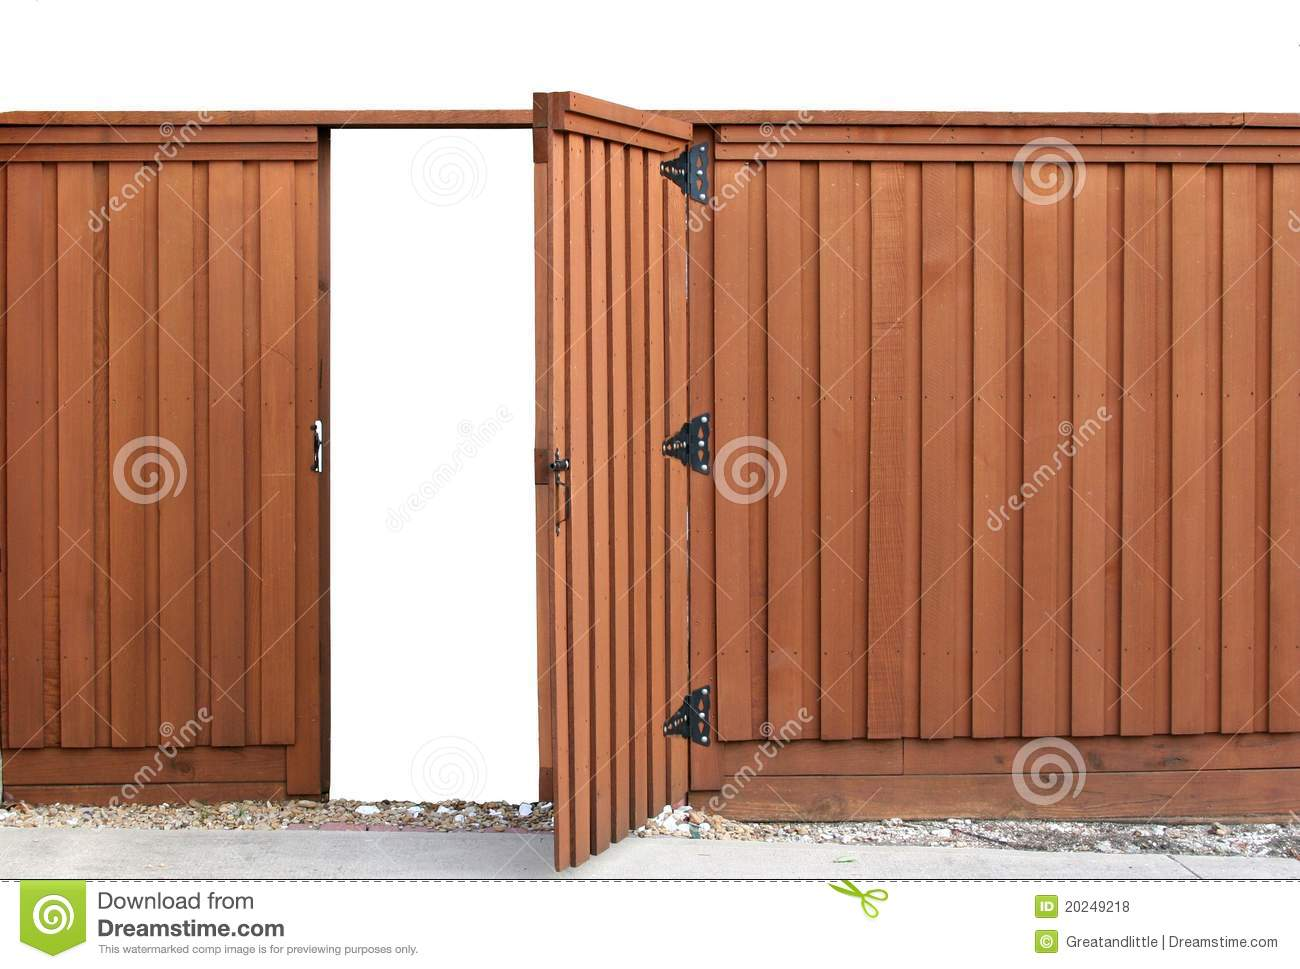 Opening Gate In A Wooden Fence Stock Photo - Image of boarded, posts